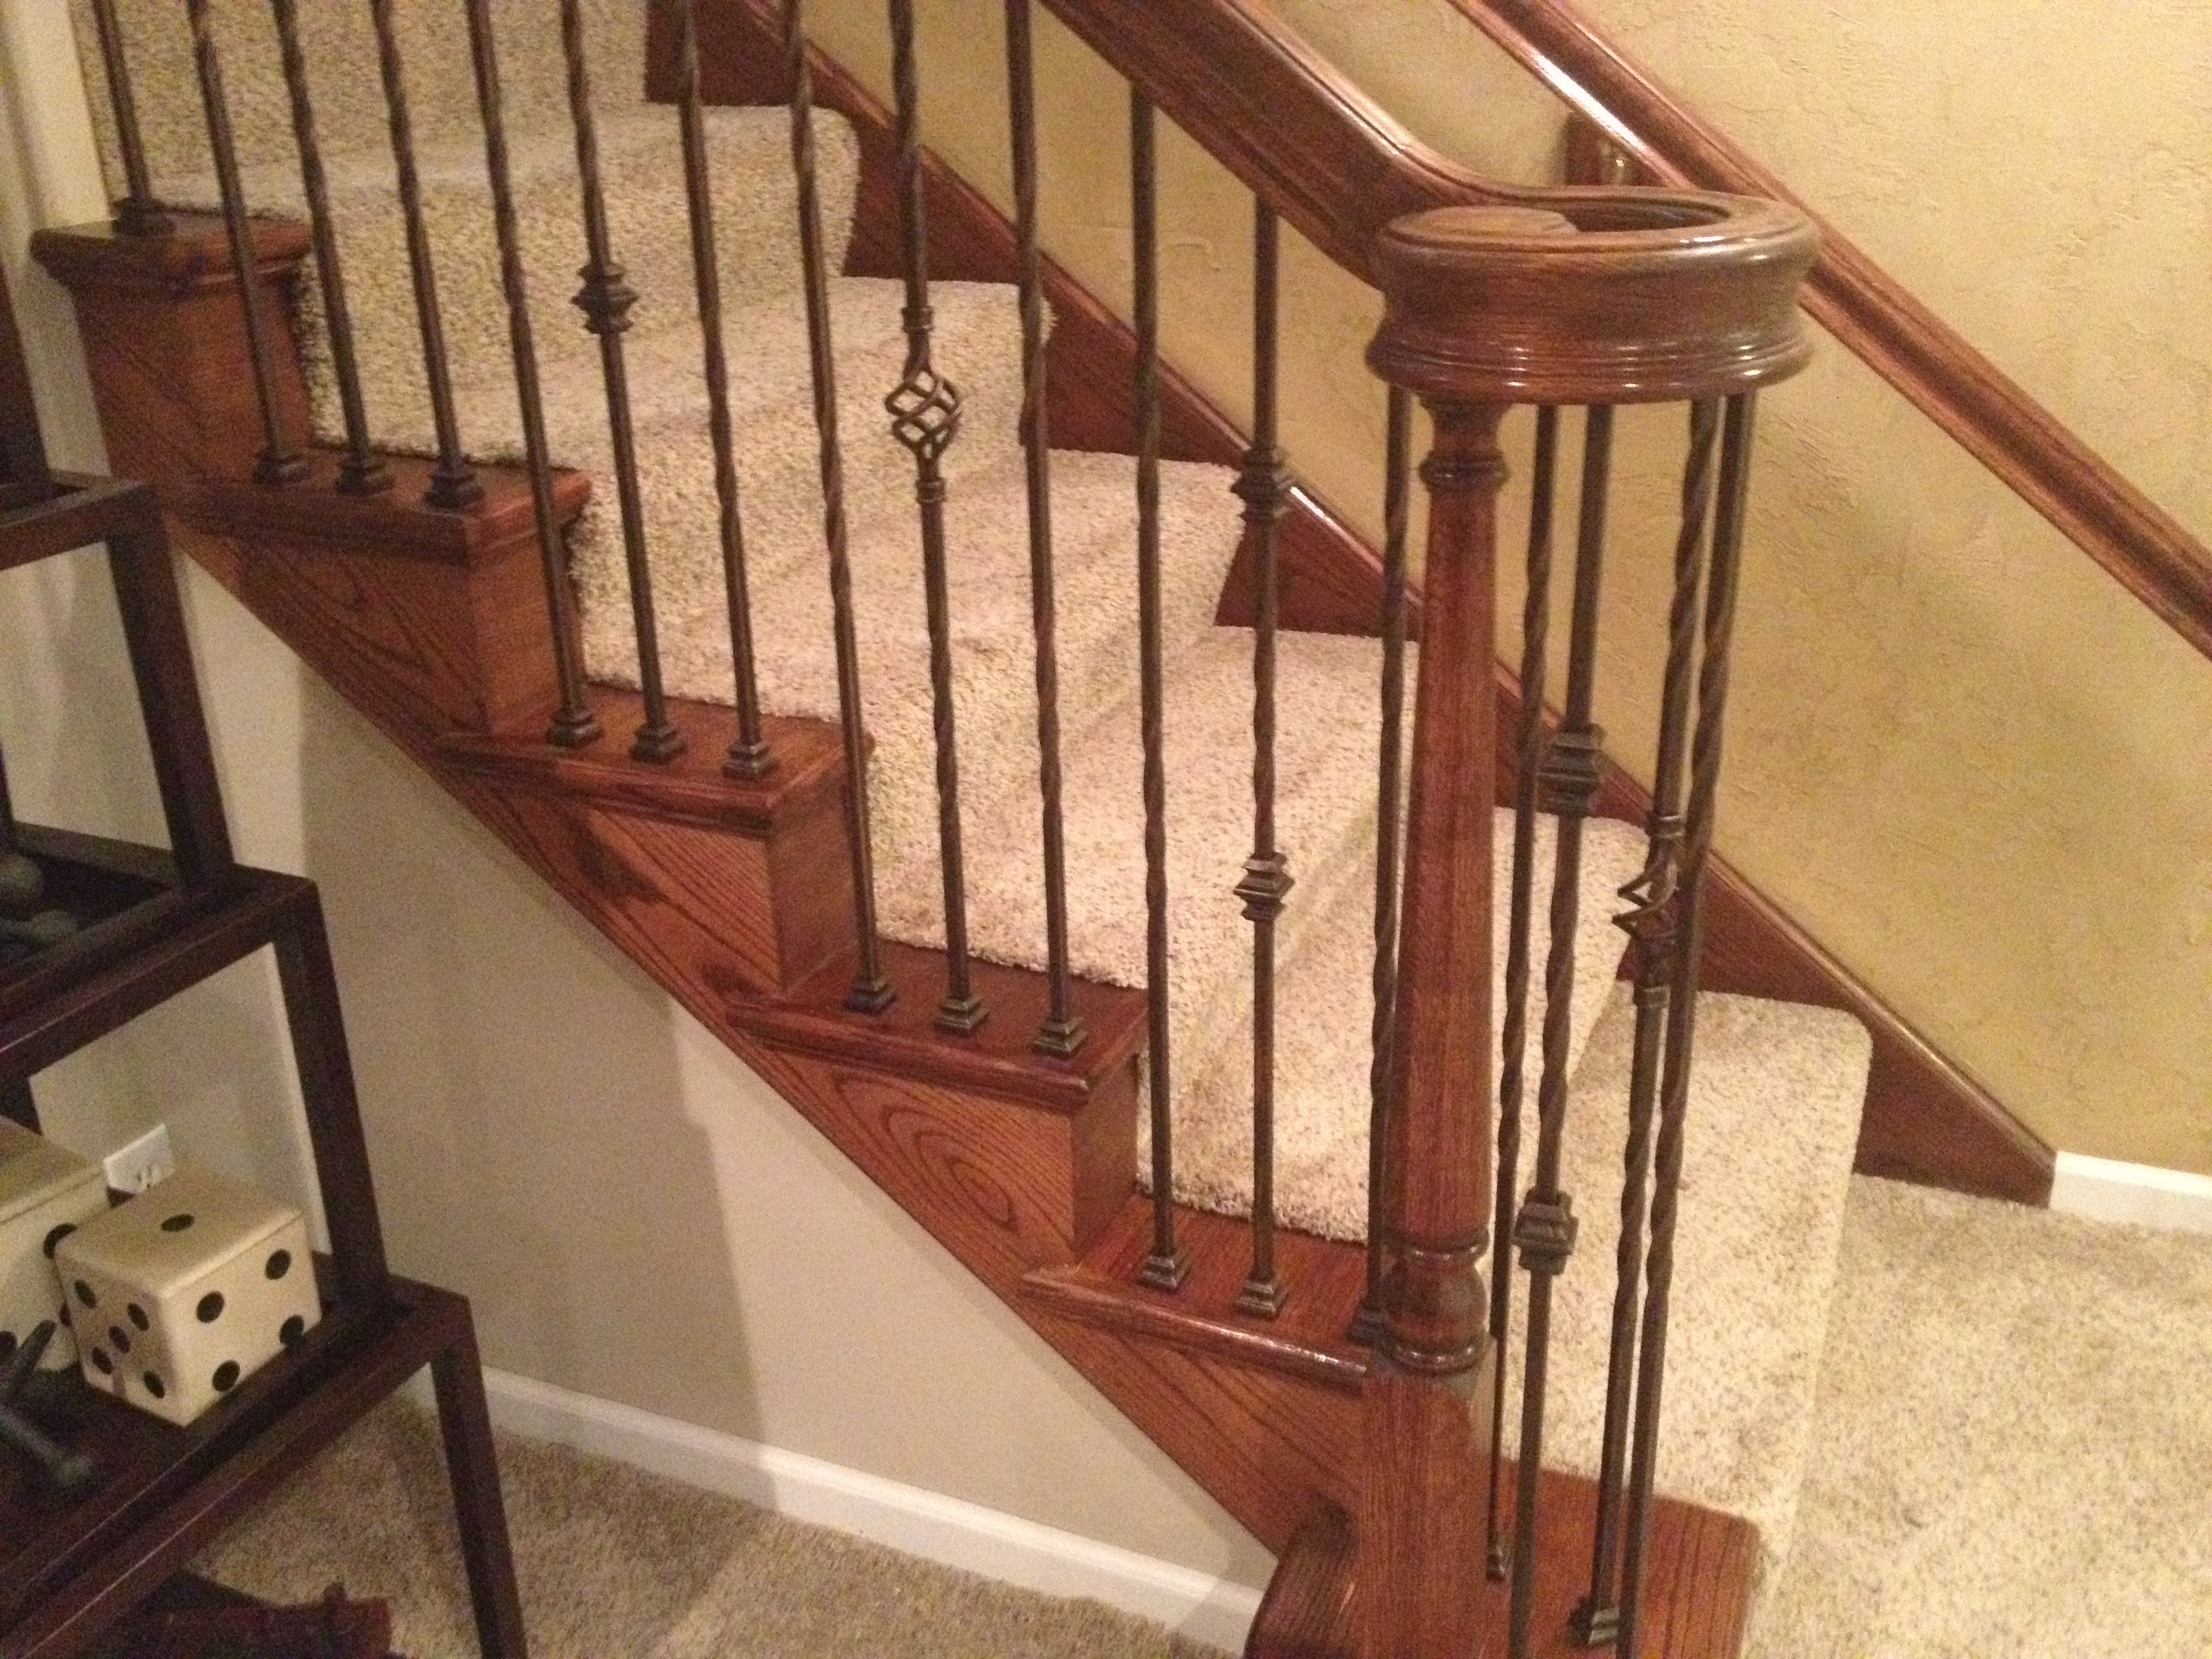 St. Louis Stair & Wood Works,build remodel,material,advise